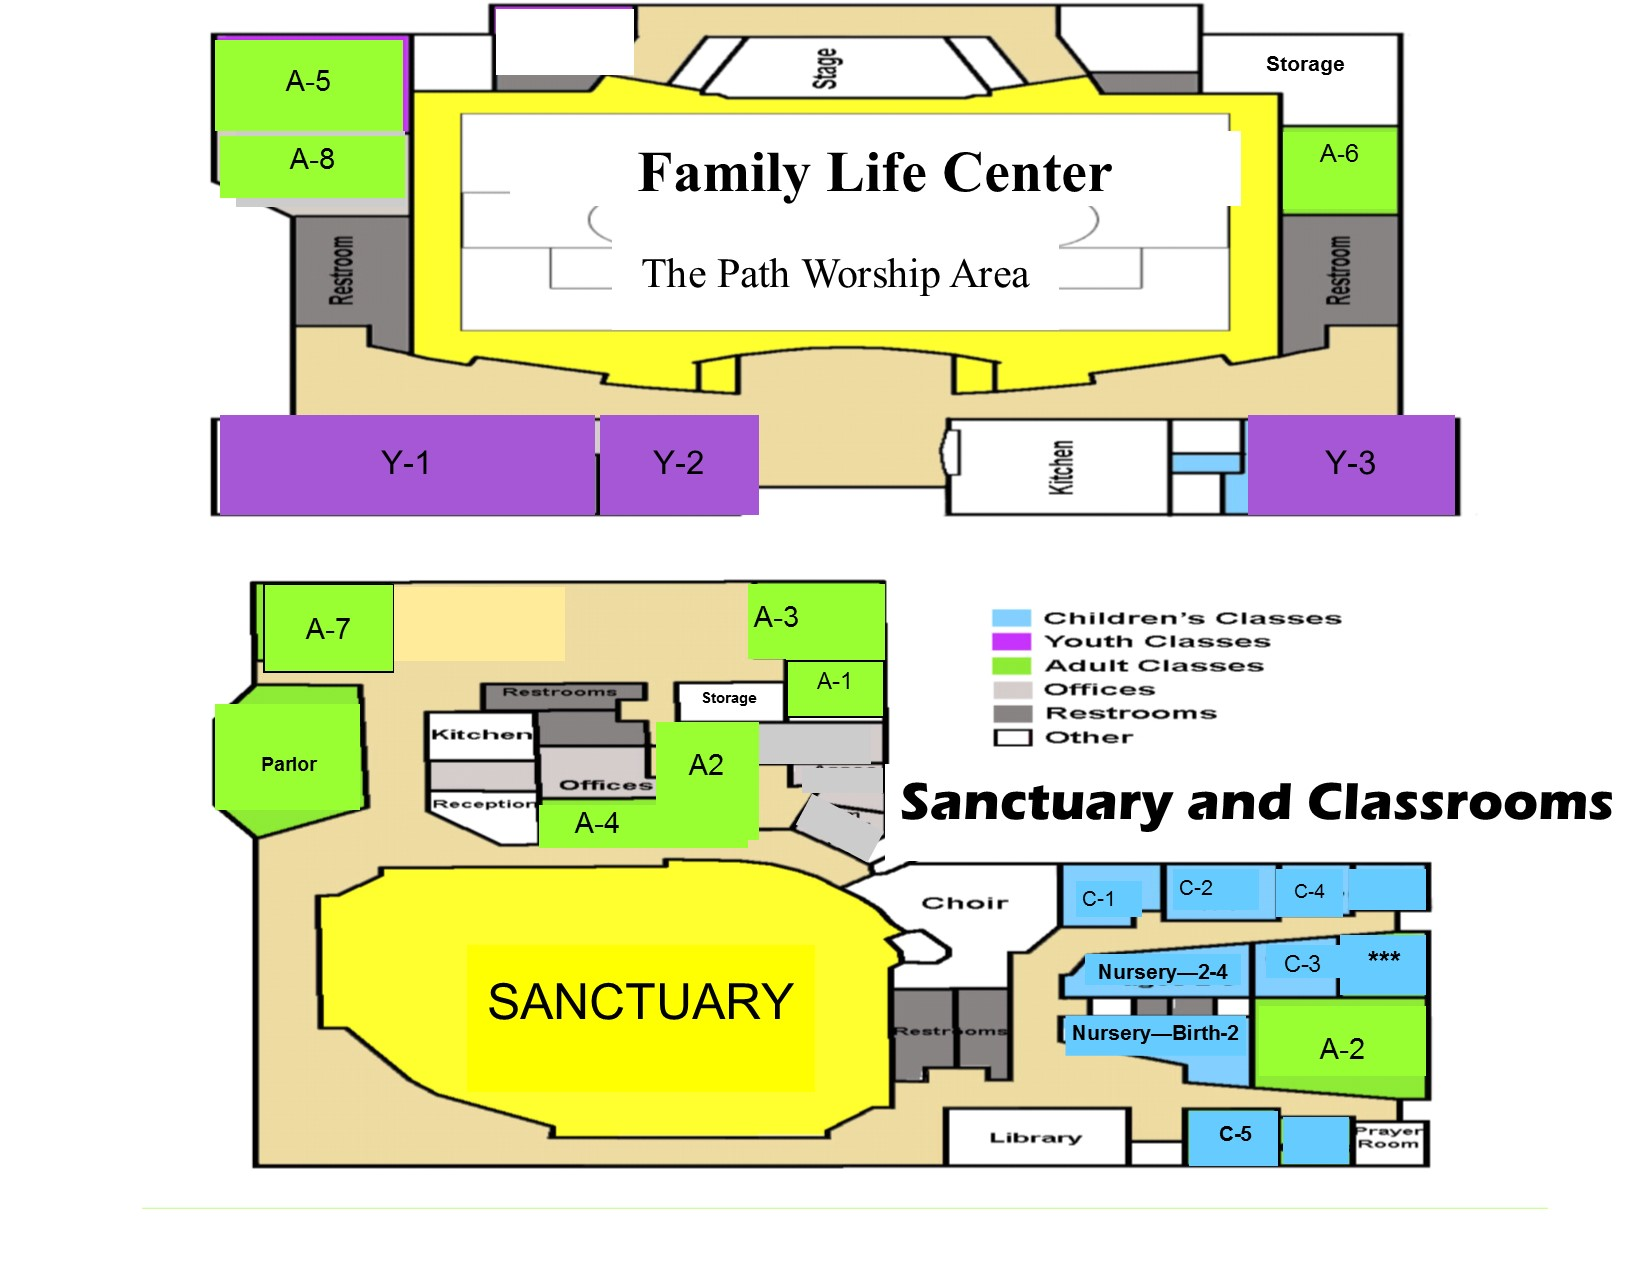 Umc Campus Map.Campus Map